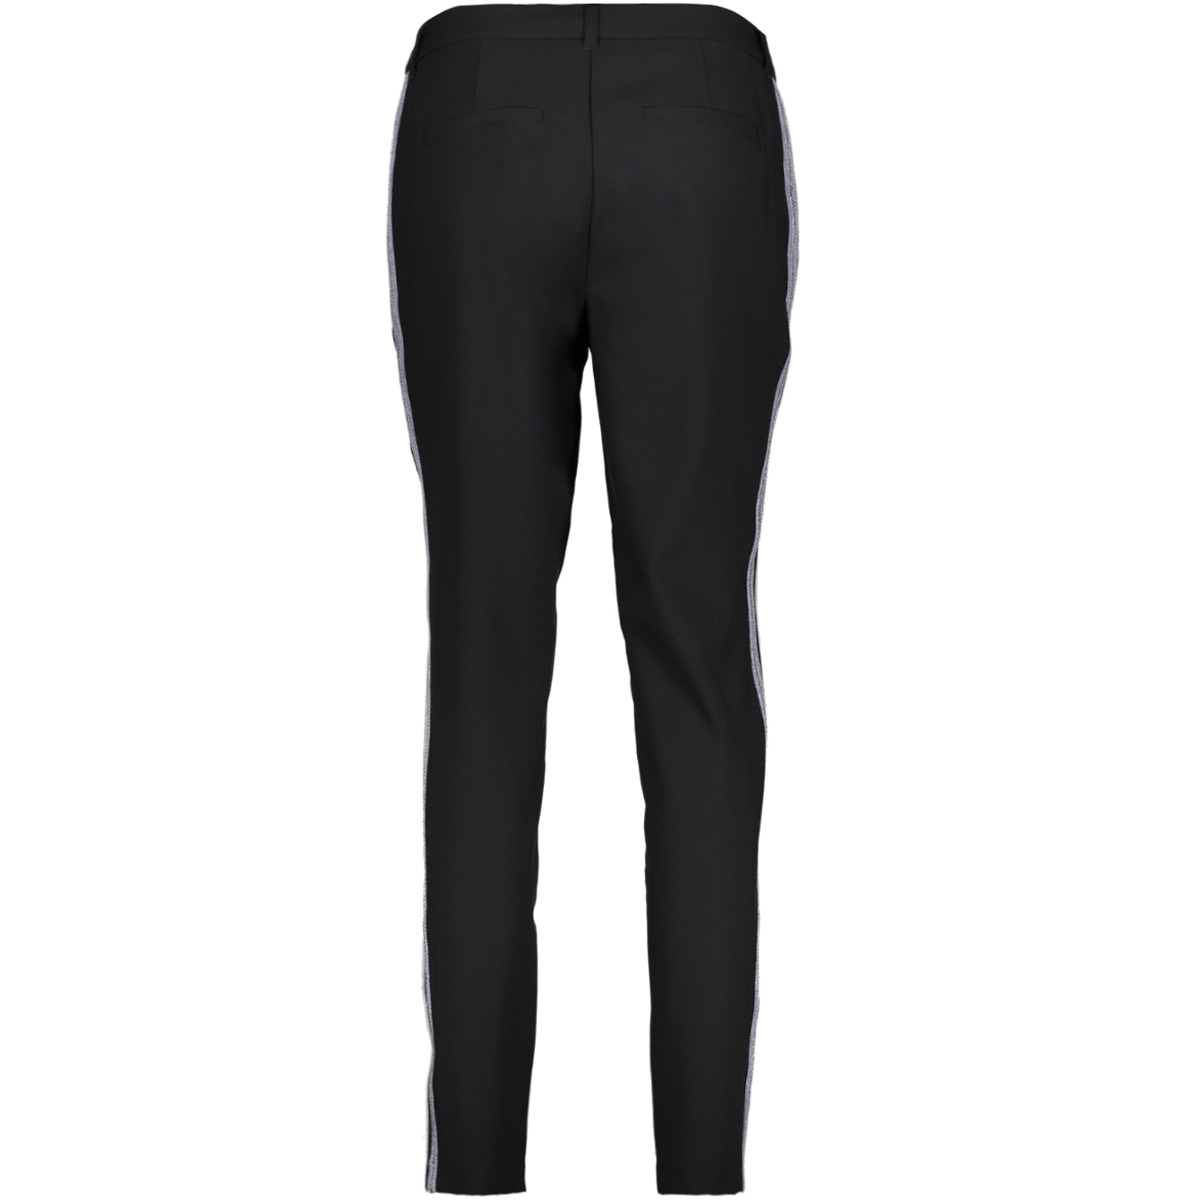 vmvictoria nw antifit shiny tape pants 10192149 vero moda broek black/silver and